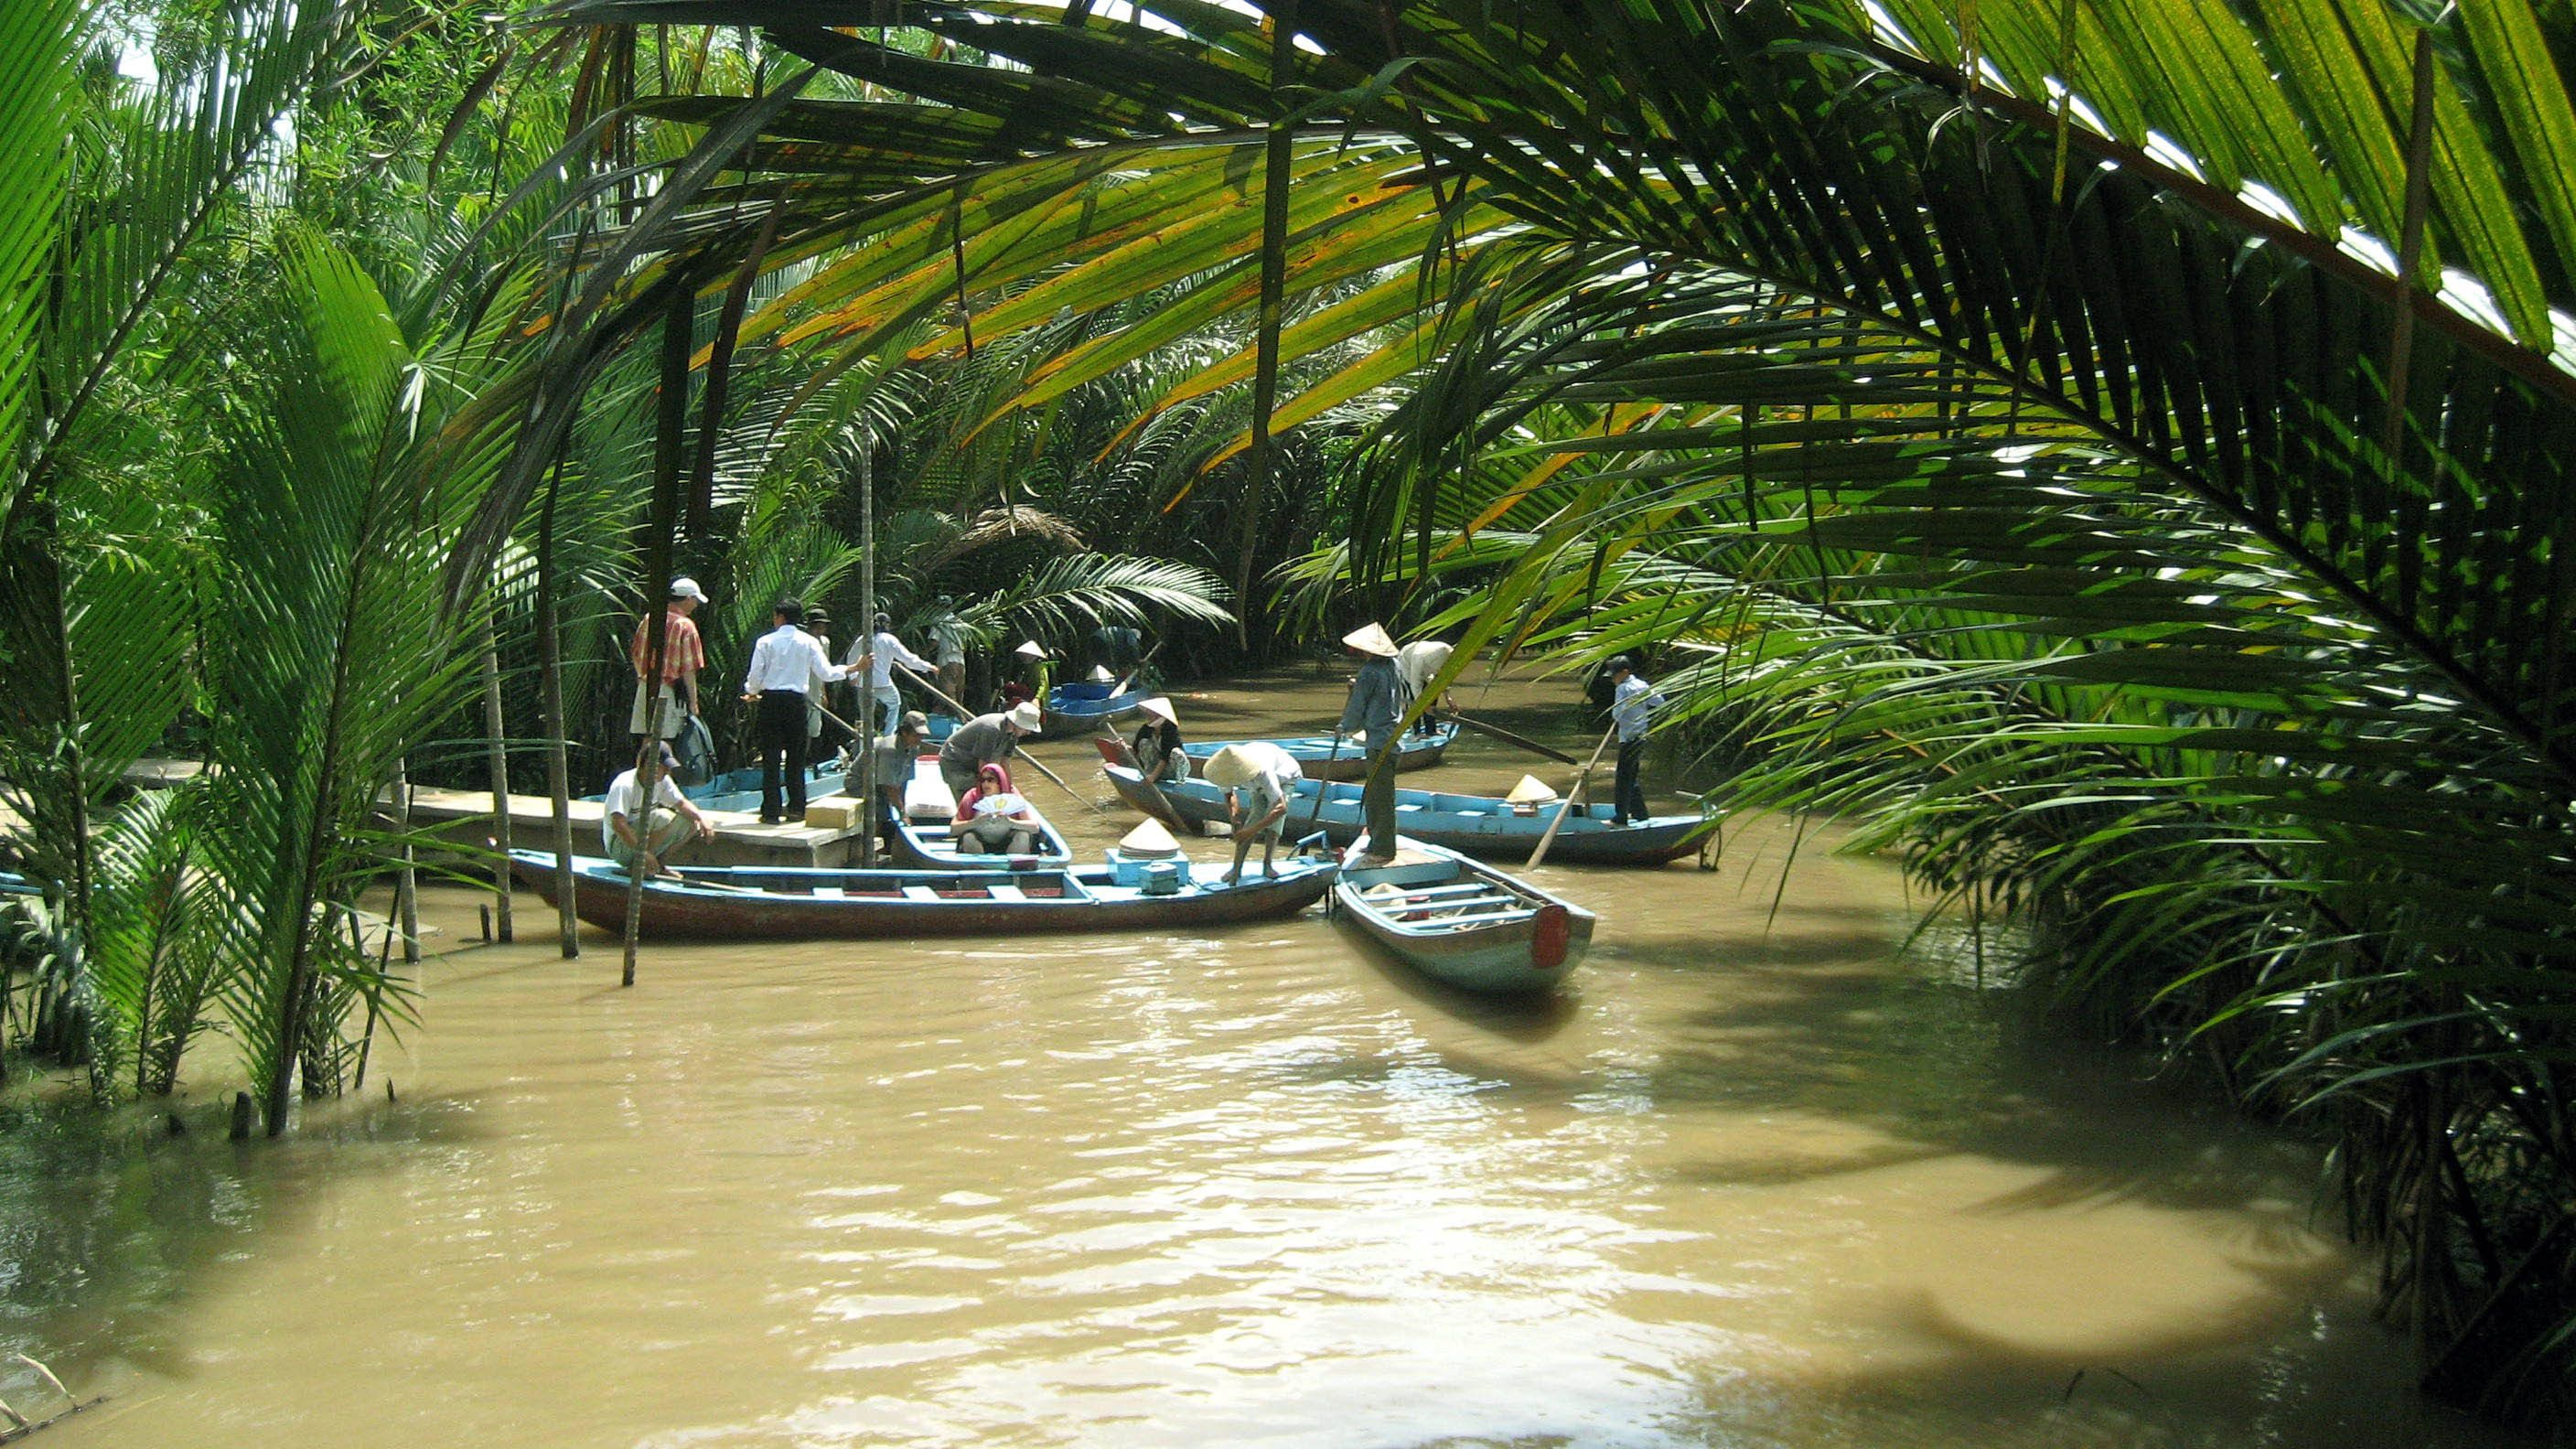 View of the Mekong river with boats in the wter in Vietnam